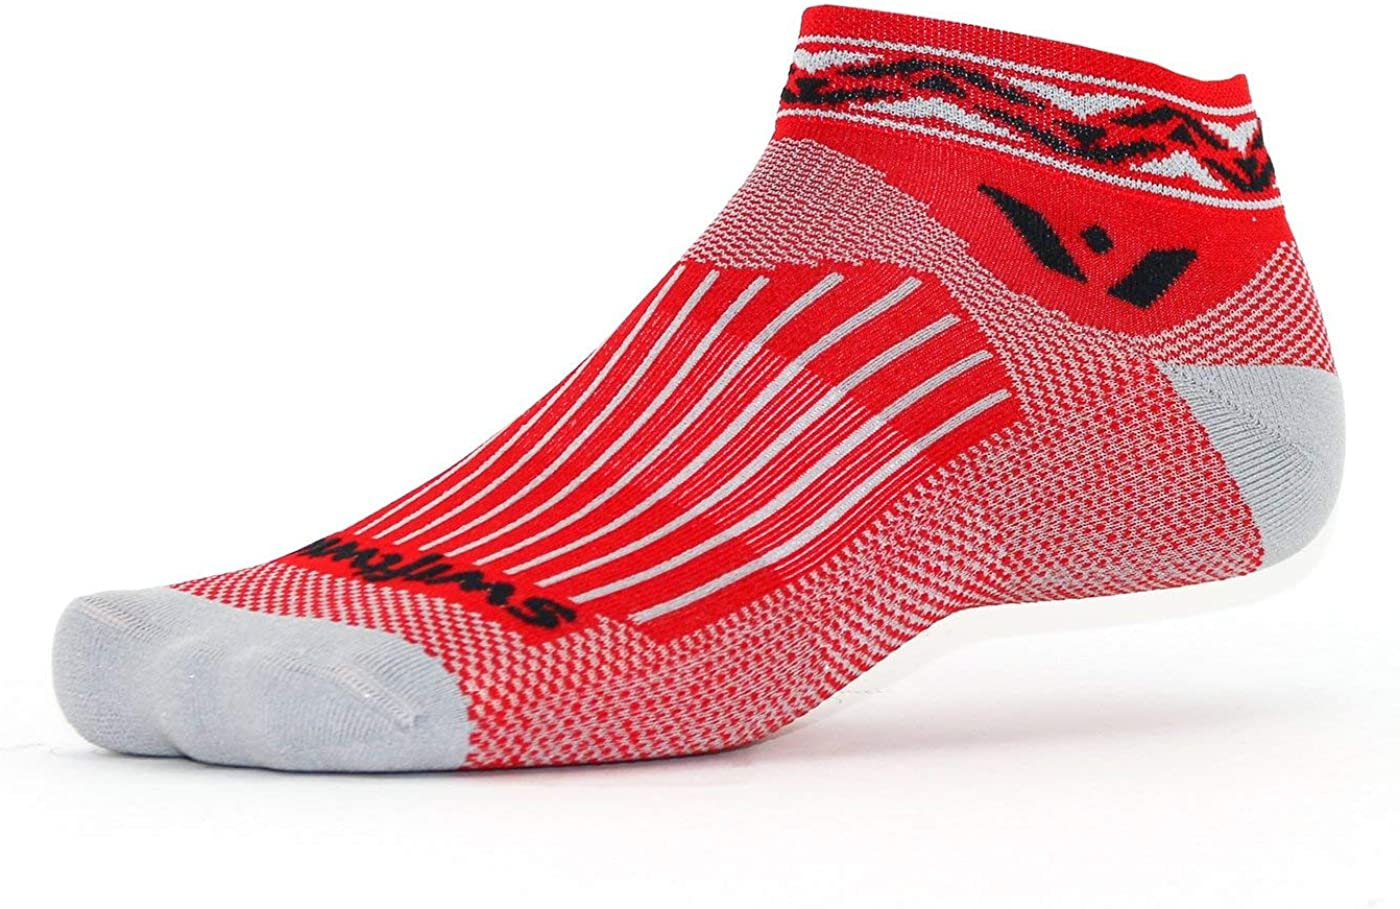 Stylish Cycling /& Running Socks for Men /& Women Cushioned Ankle Socks Swiftwick- VISION ONE